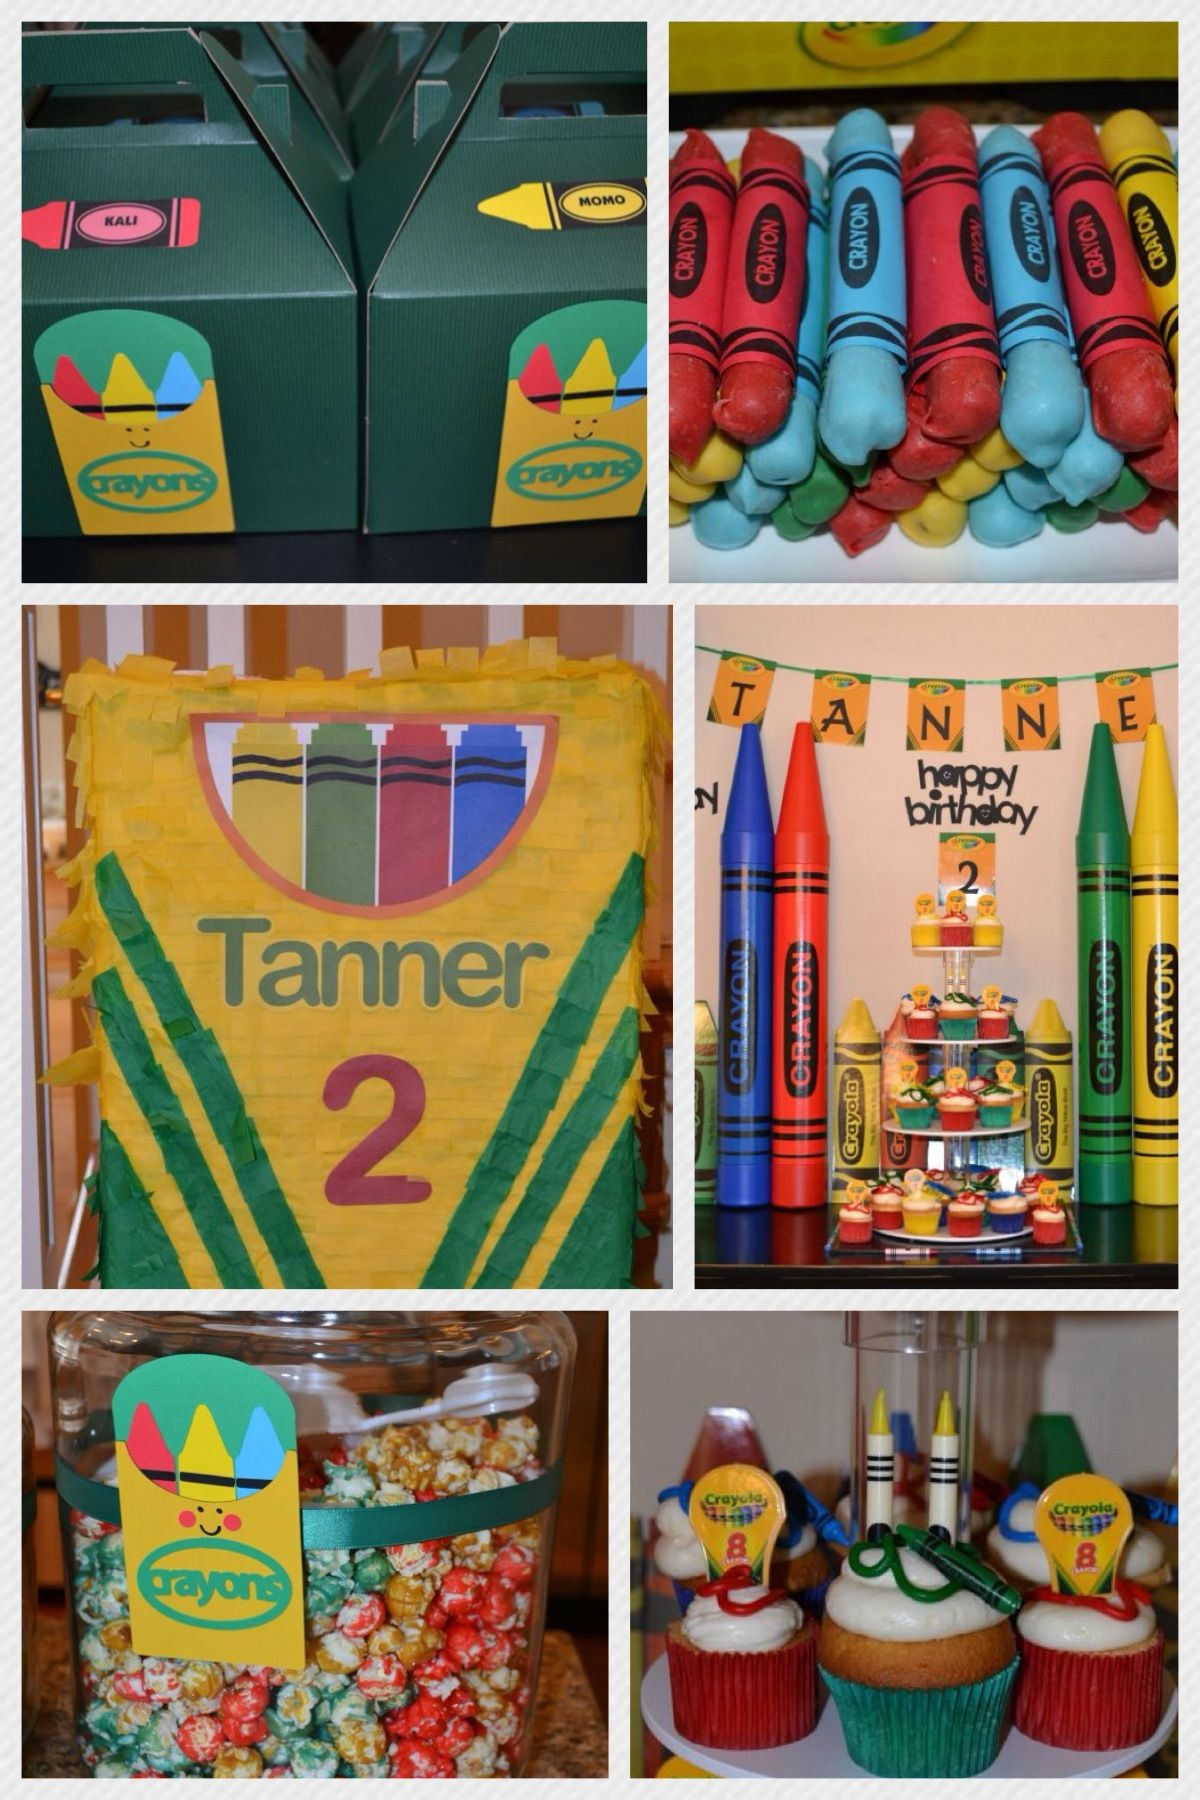 Tanners 2nd Birthday Party